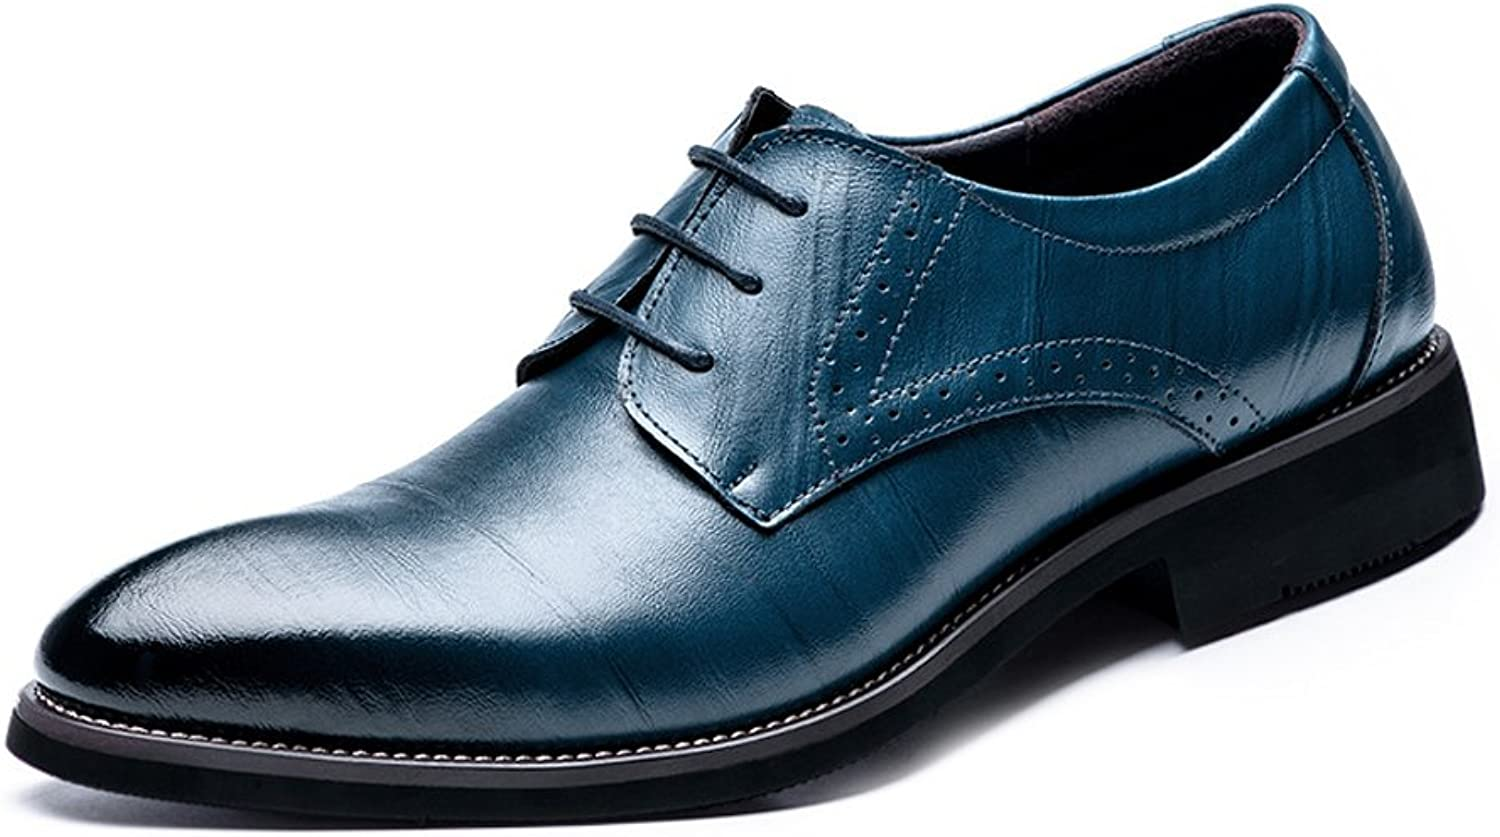 JIALUN-shoes Simple Men's Genuine Leather shoes Lace Up Breathable Business Low Top Lined Oxfords